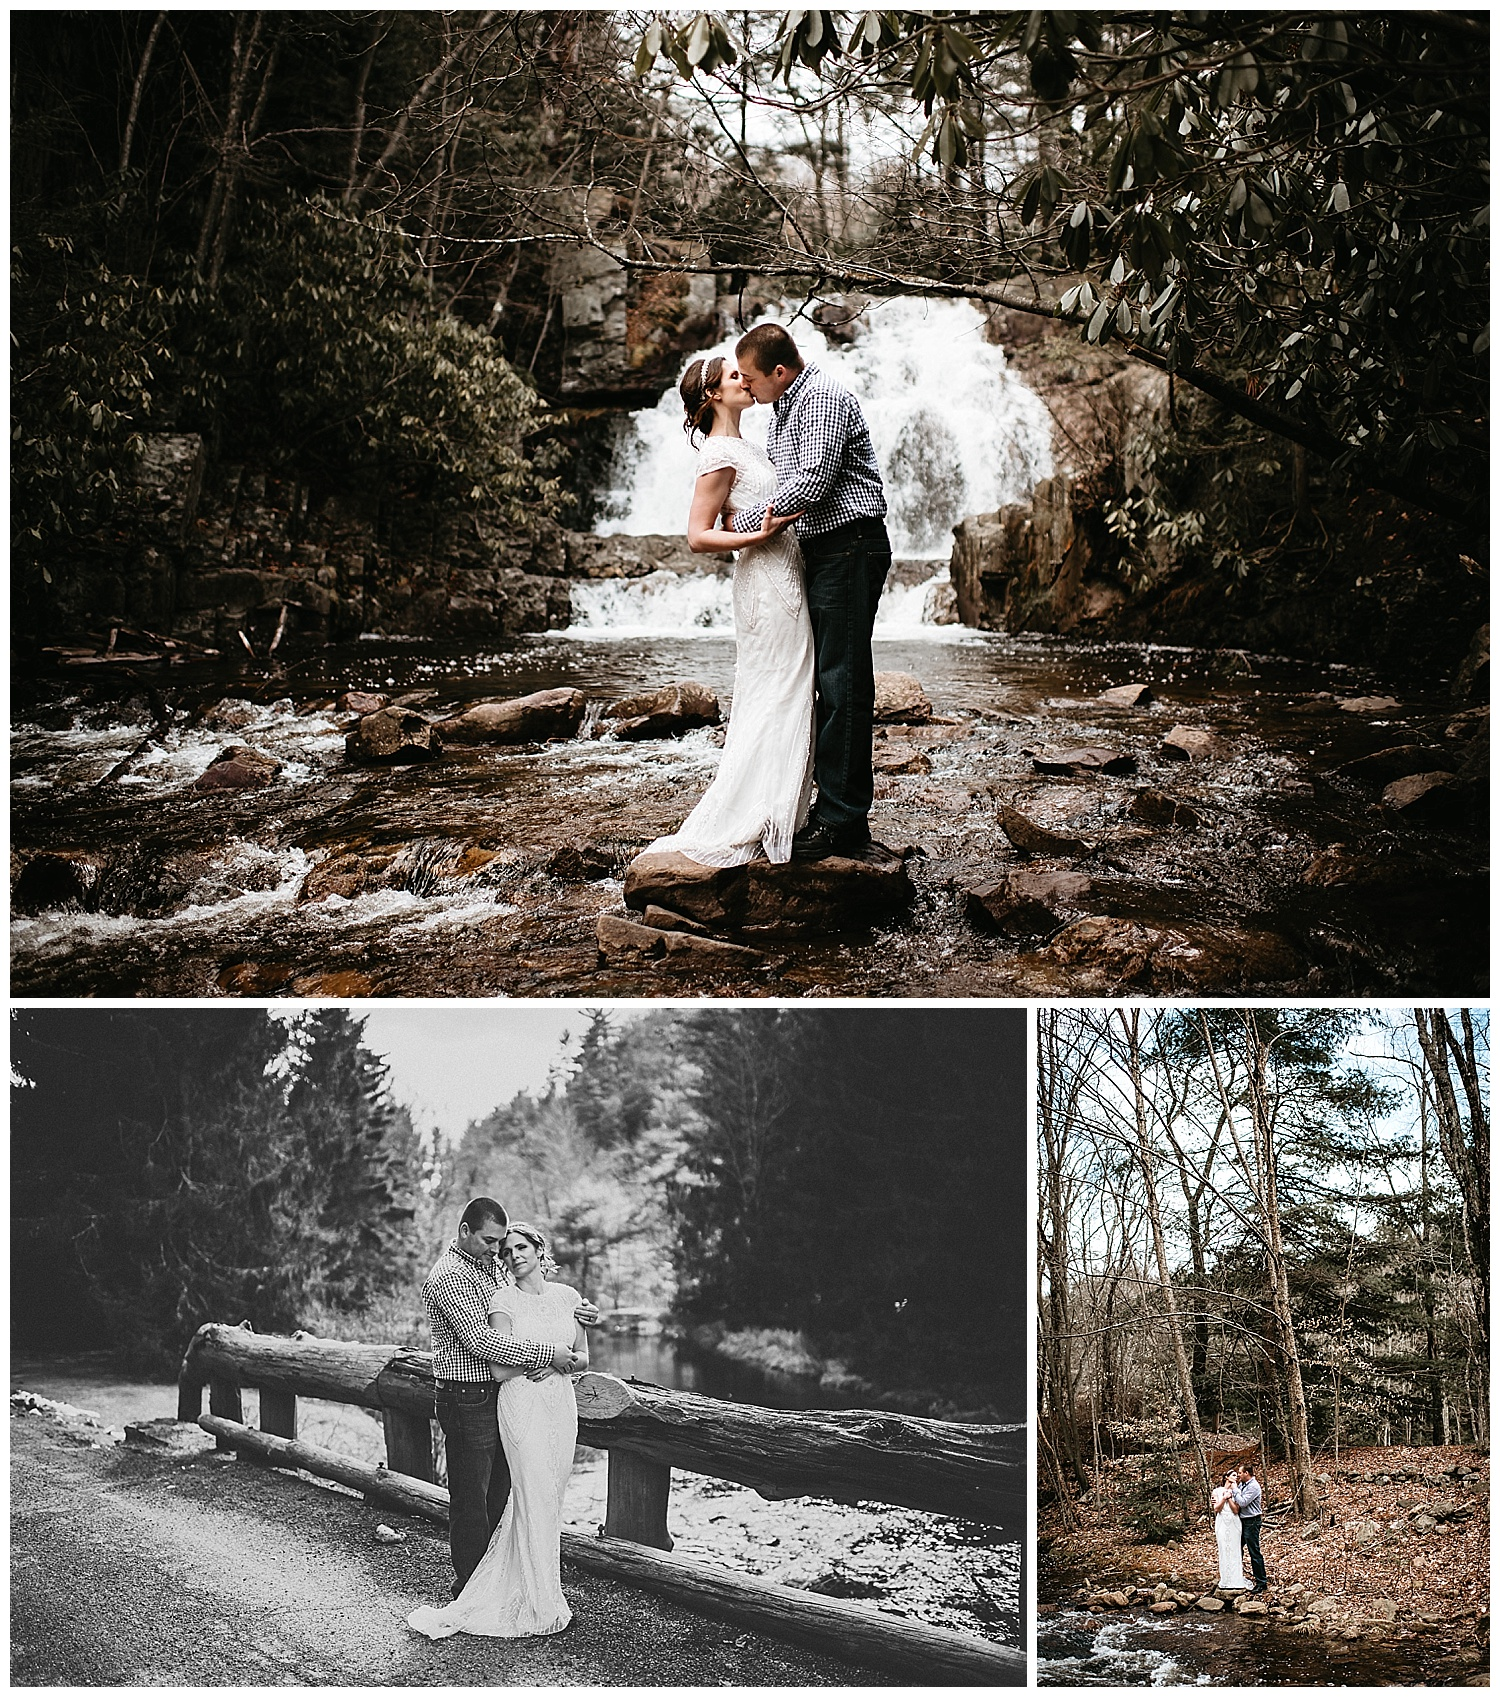 NEPA-Wedding-Engagement-photographer-hickory-run-state-park-hawk-falls-elopement_0031.jpg